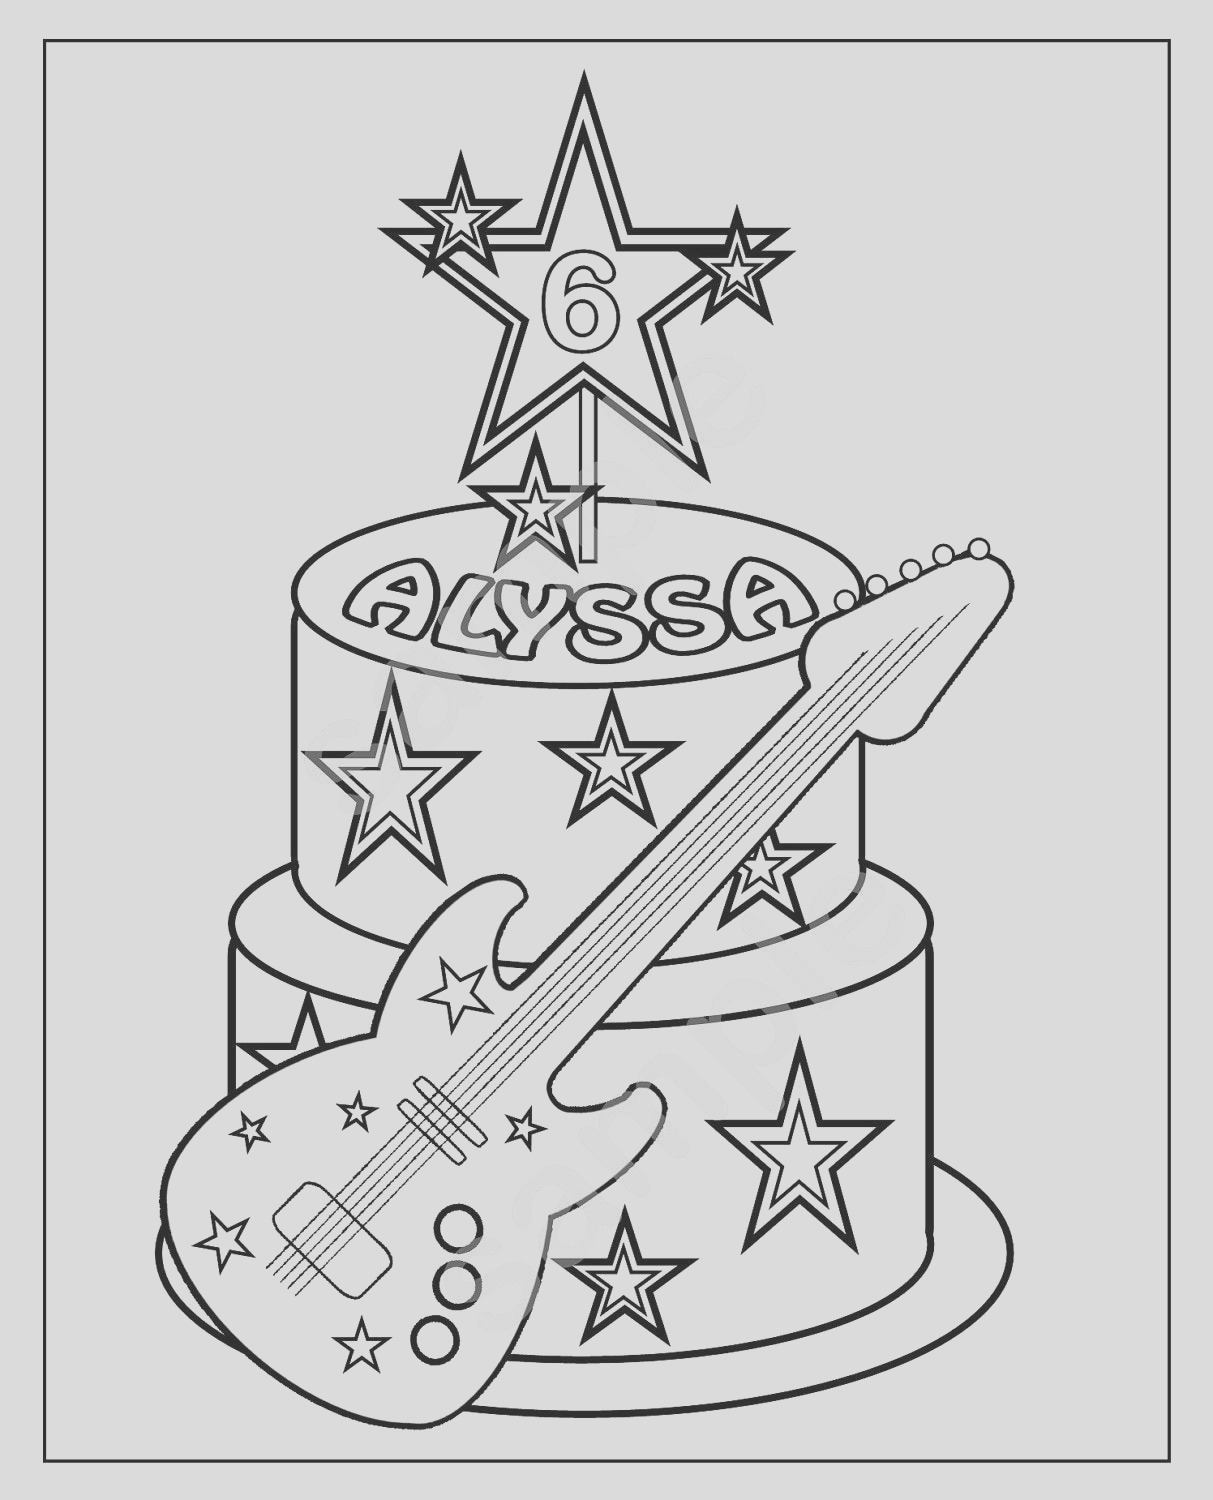 personalized printable rockstar cake